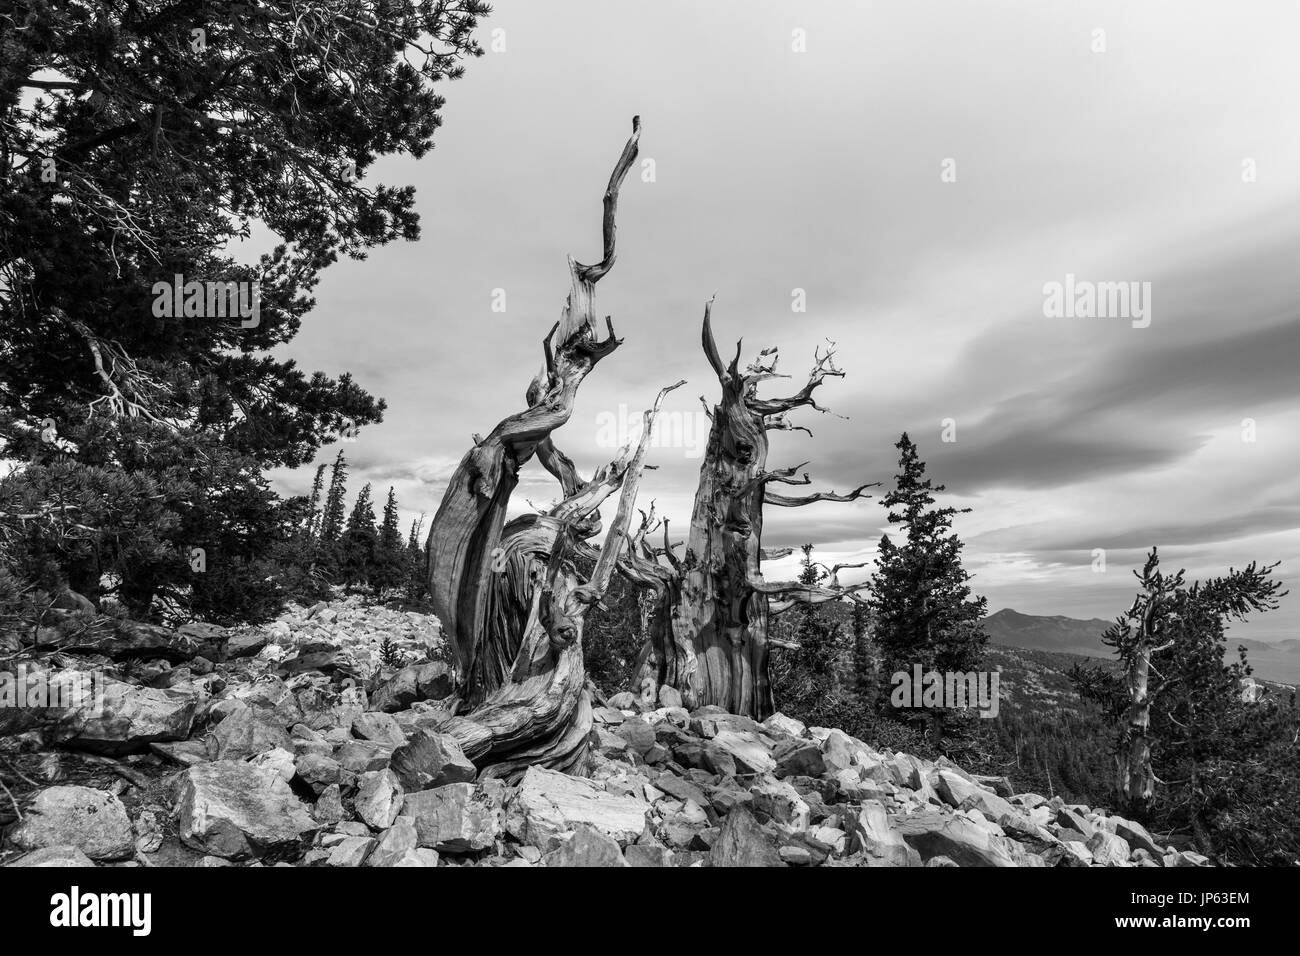 Black and white of ancient Bristlecone Pines at Great Basin National Park in Northern Nevada.  Bristlecone Pines are the oldest trees in the world. - Stock Image